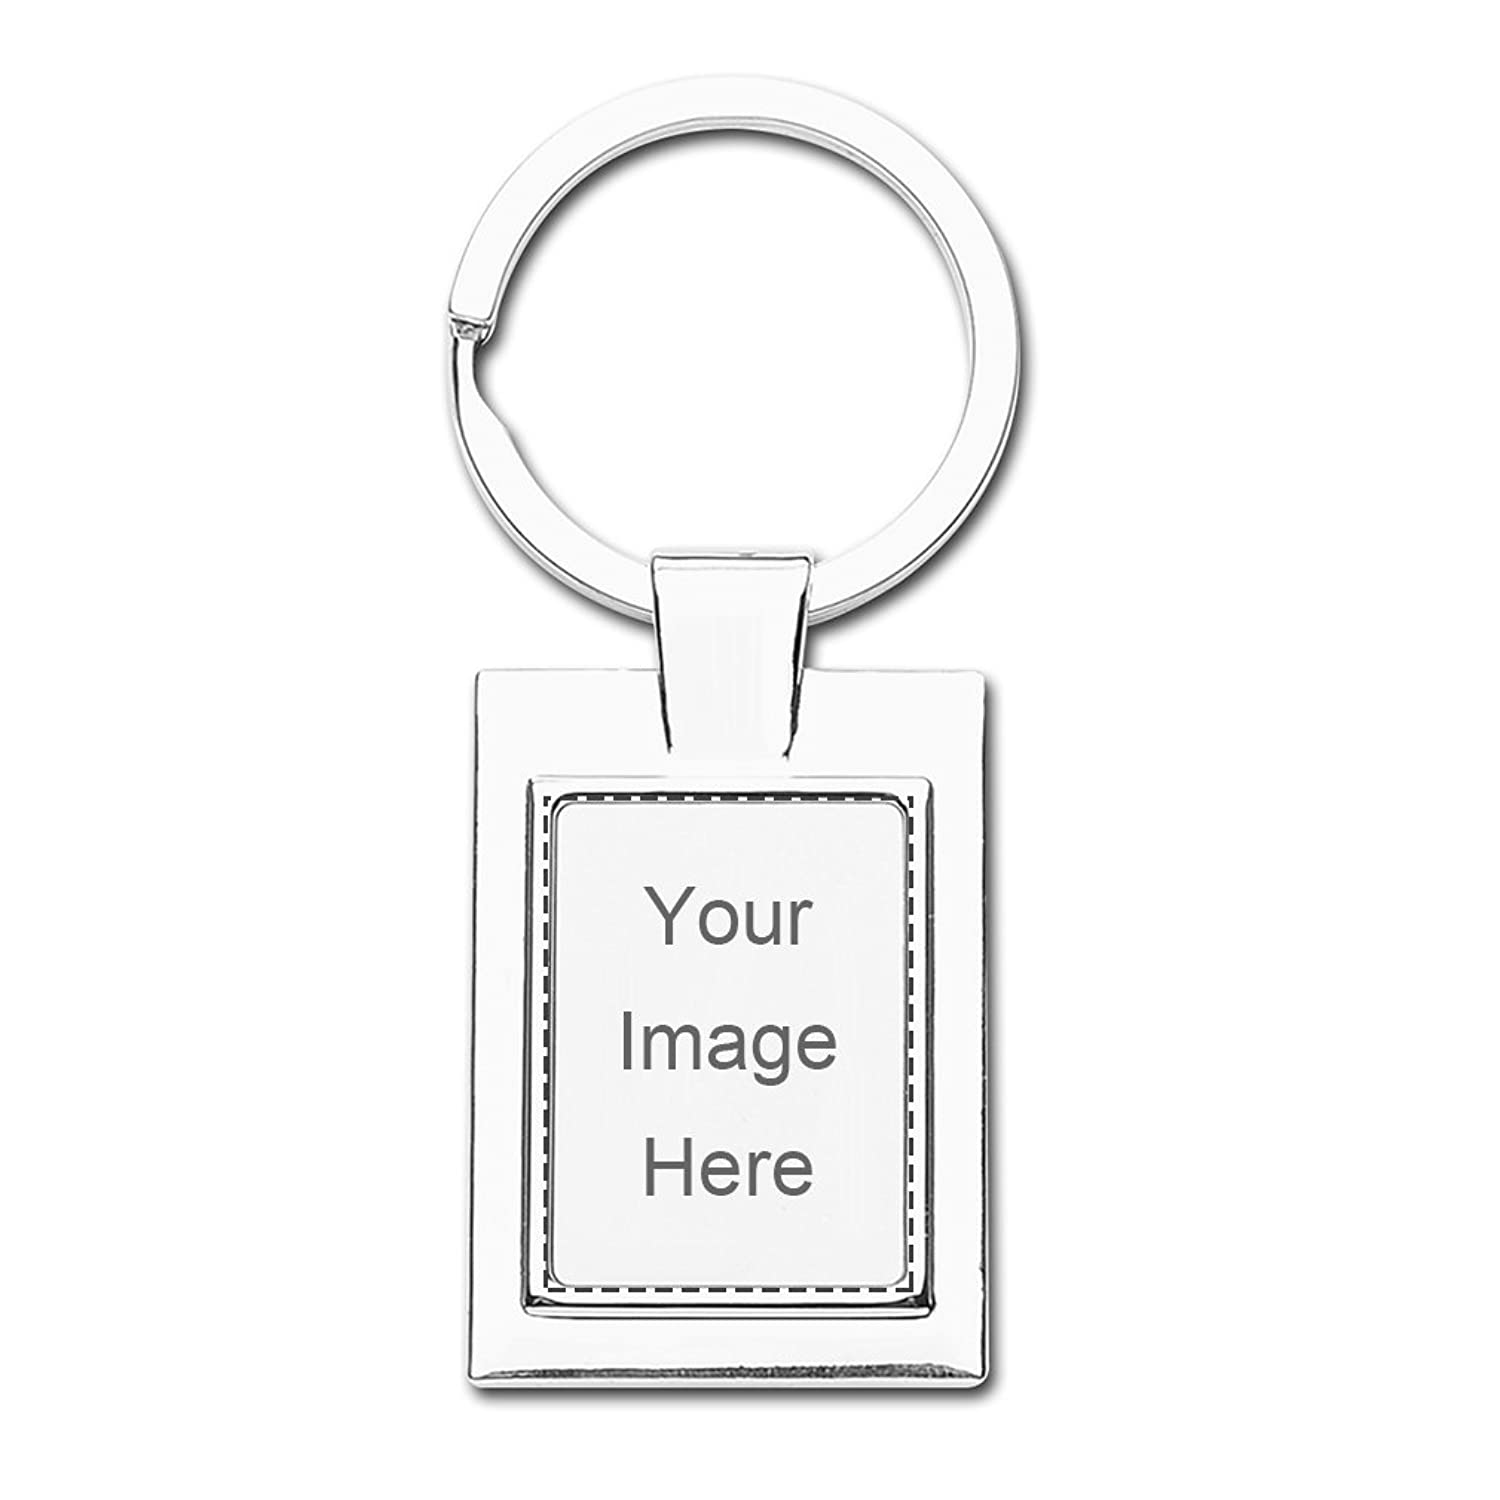 Design Prinablet photo or text Keychains Custom Personalized Rectangle Keychain Set